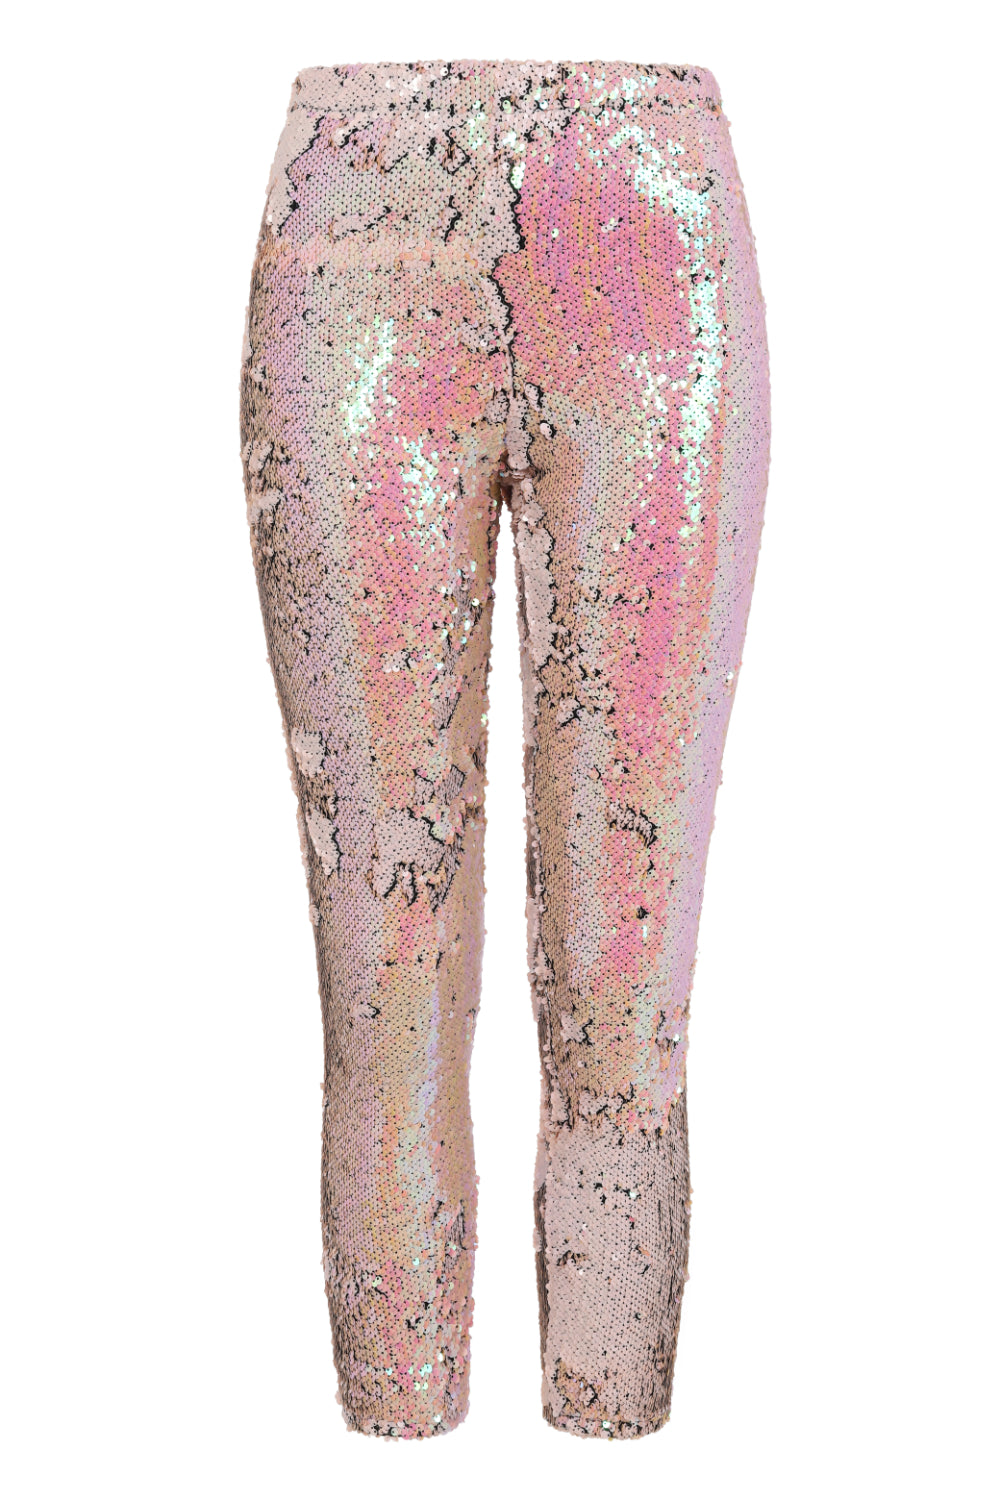 Koko Holographic Sequin Embellished Stretch Leggings